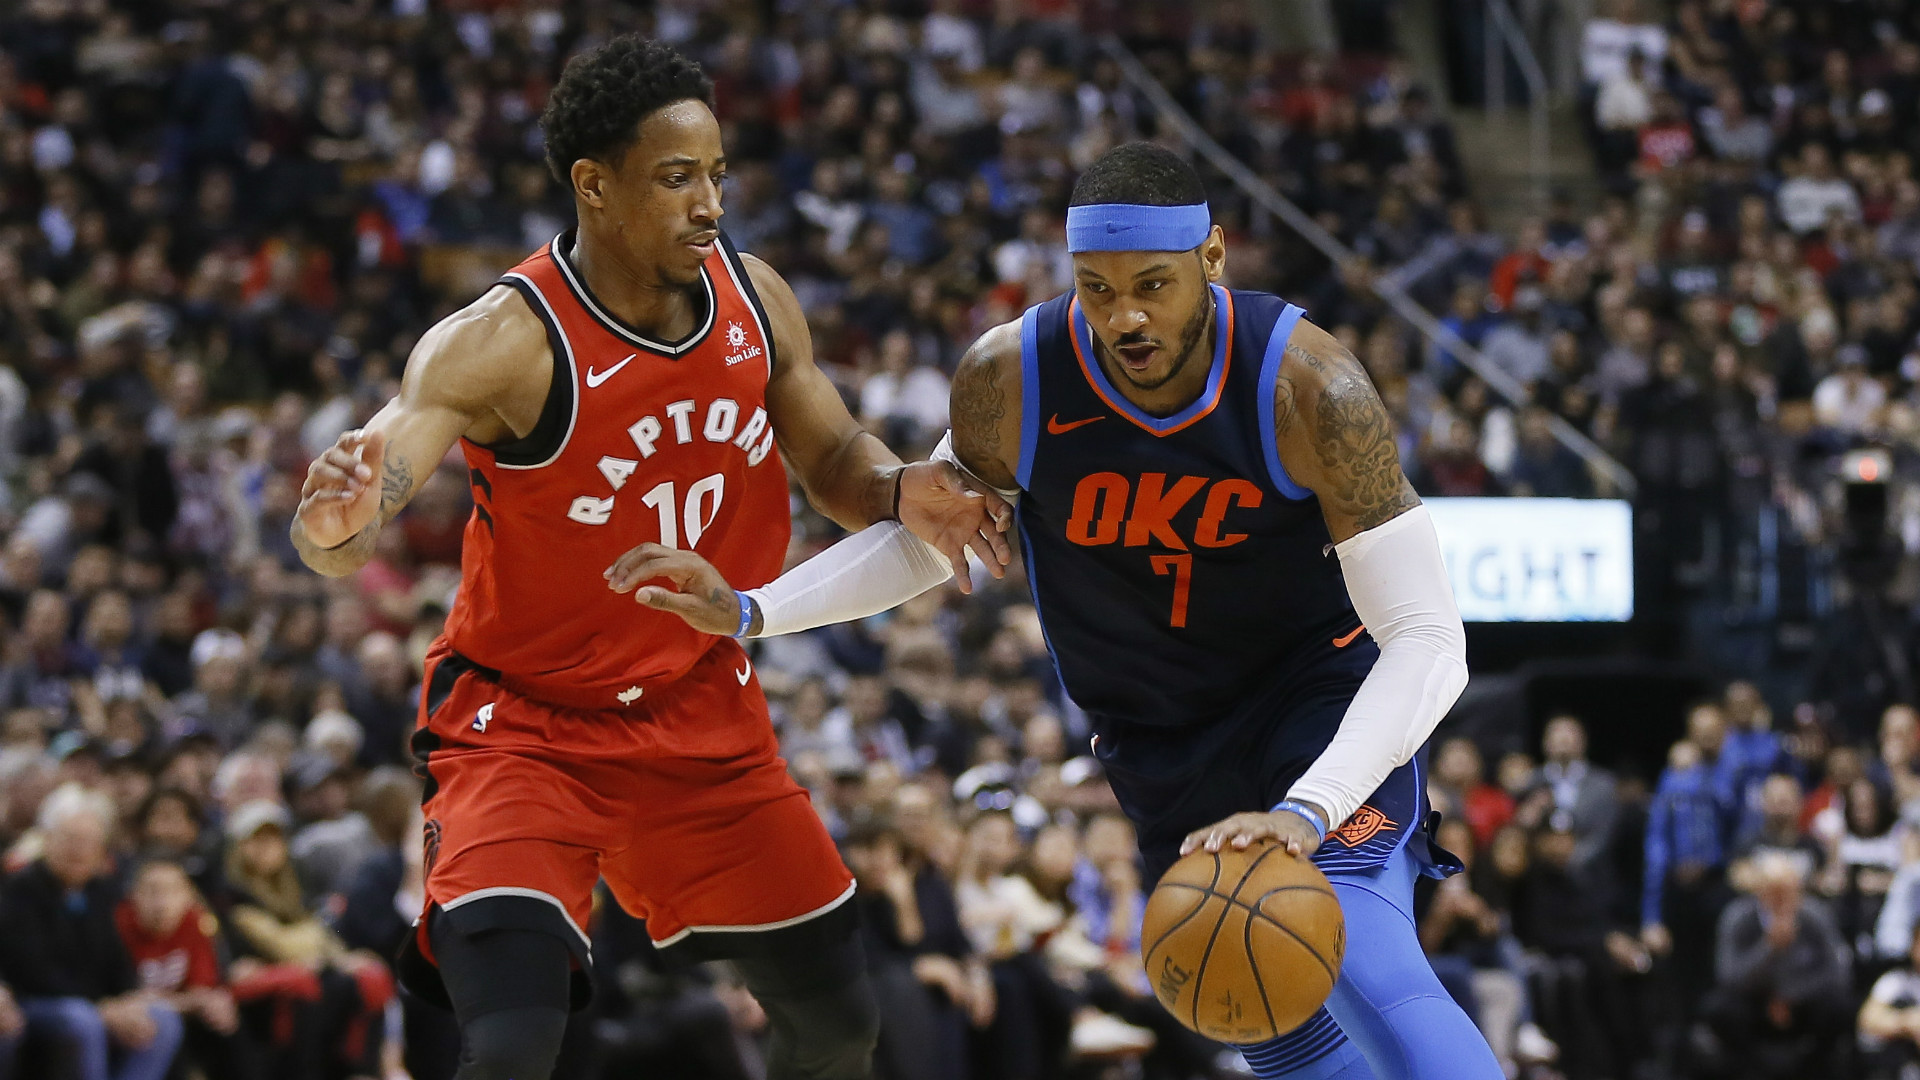 Raptors lose, trio ejected as streak snaps